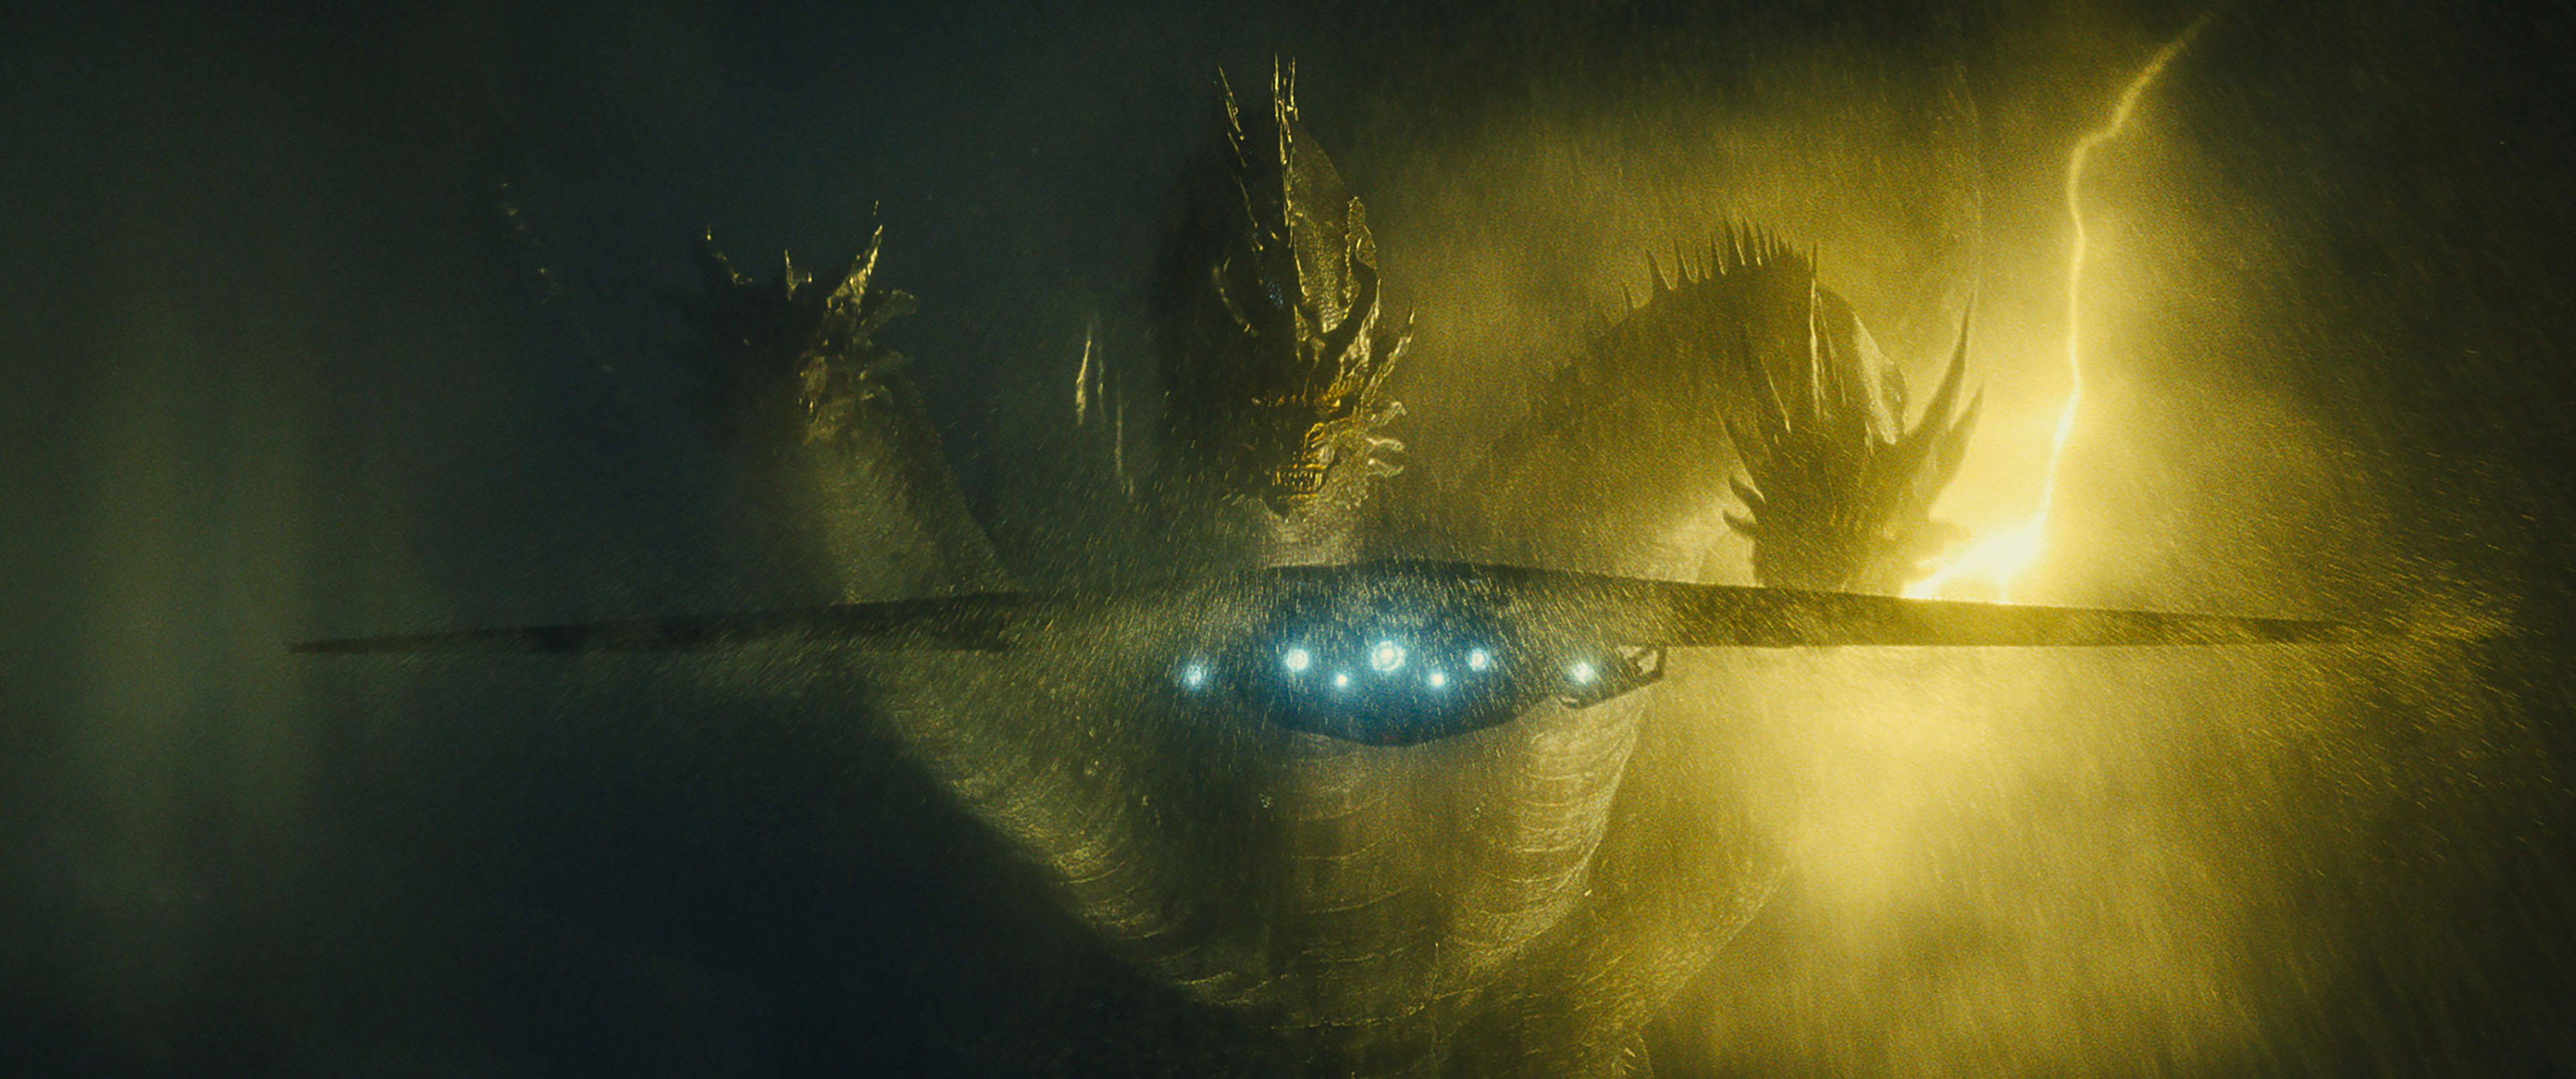 Ghidorah Monarch Ship Godzilla King of the Monsters 4K Still